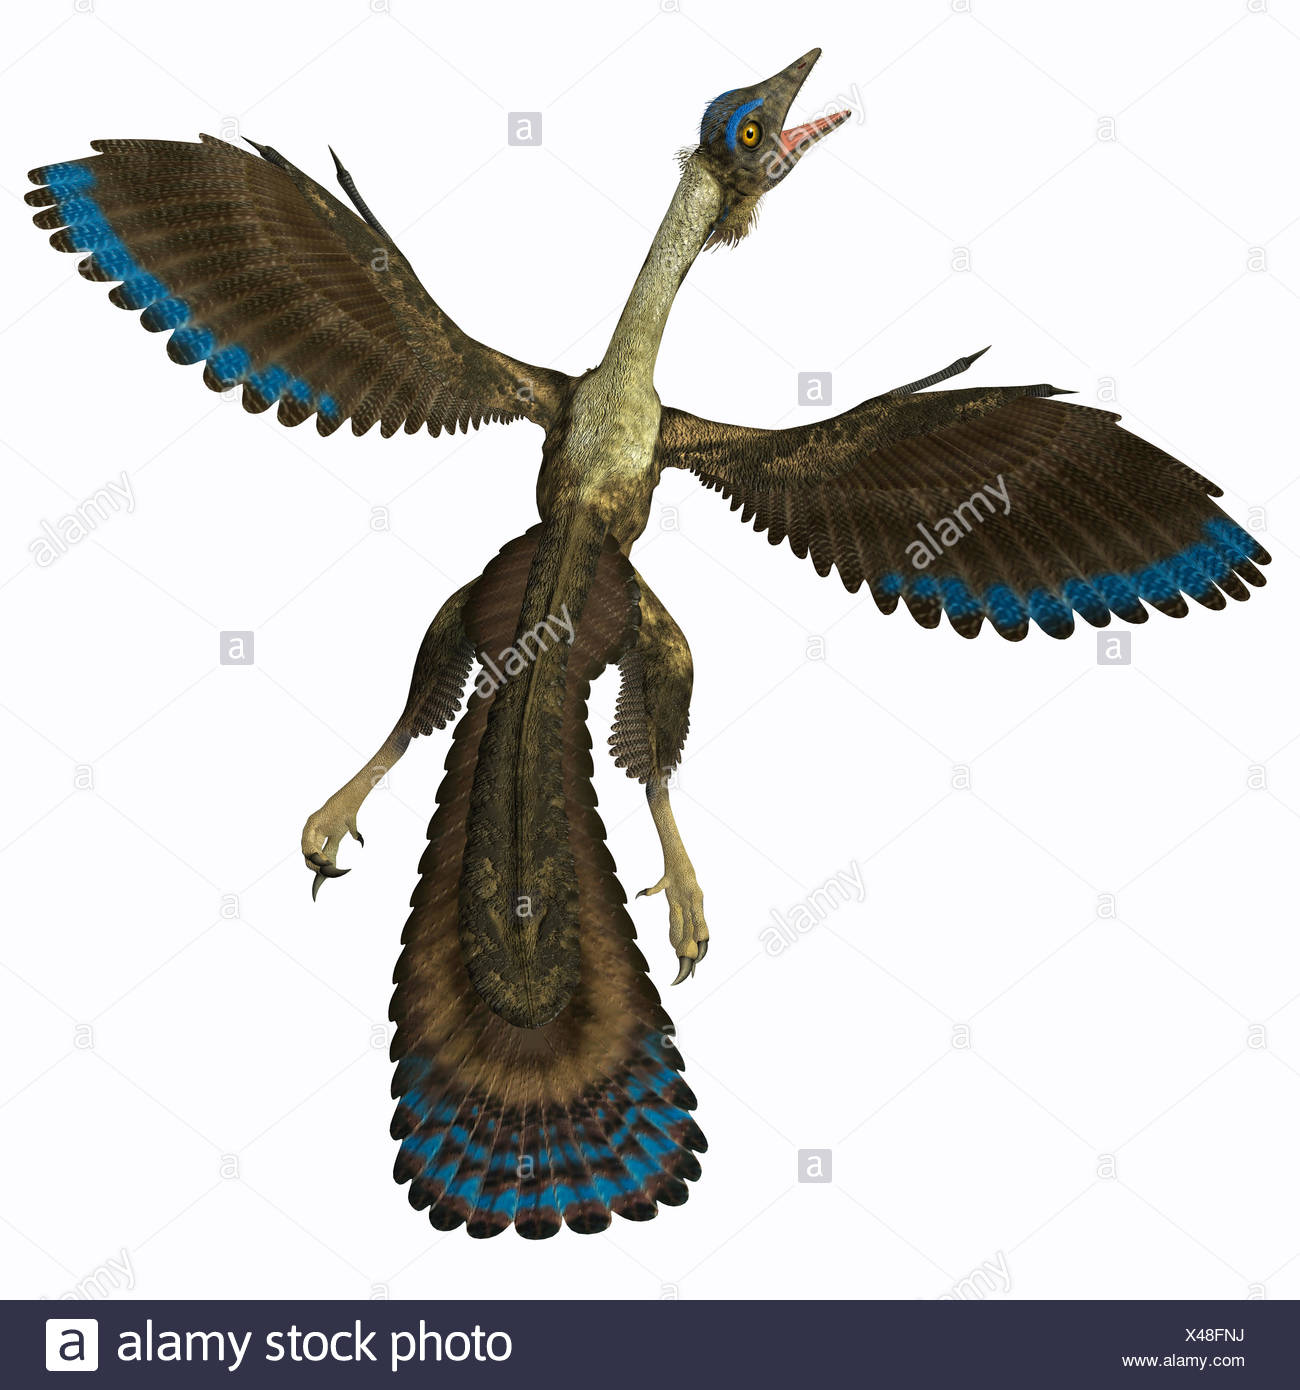 Archaeopteryx on White - Stock Image